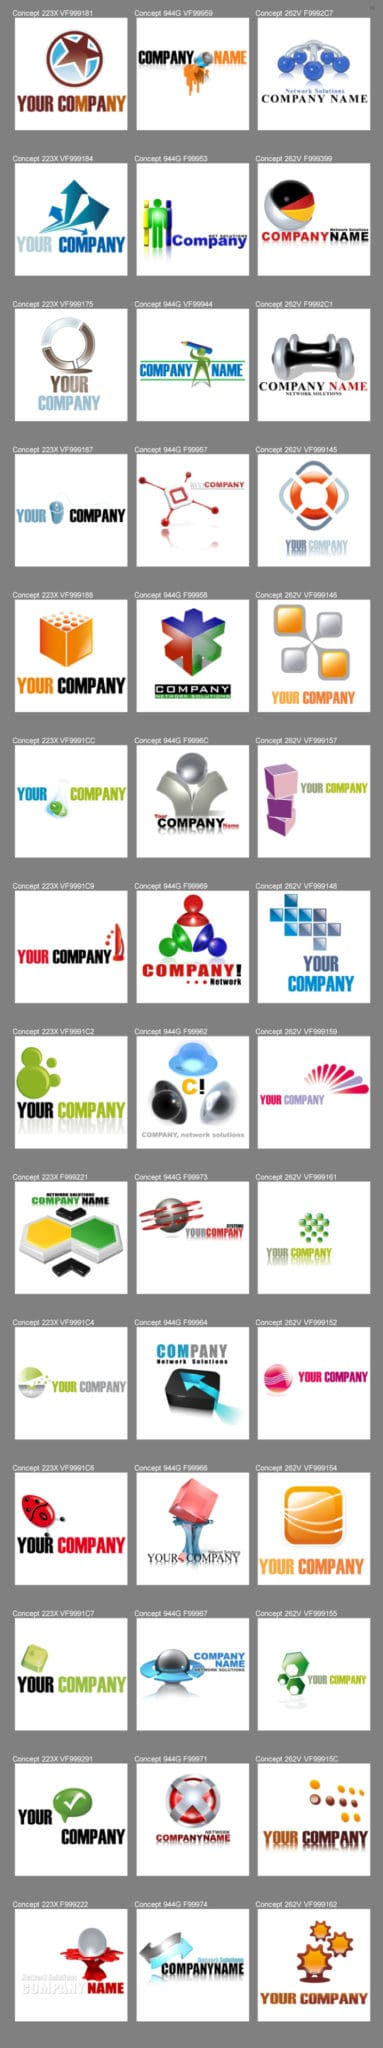 What Elements make for a Great logo